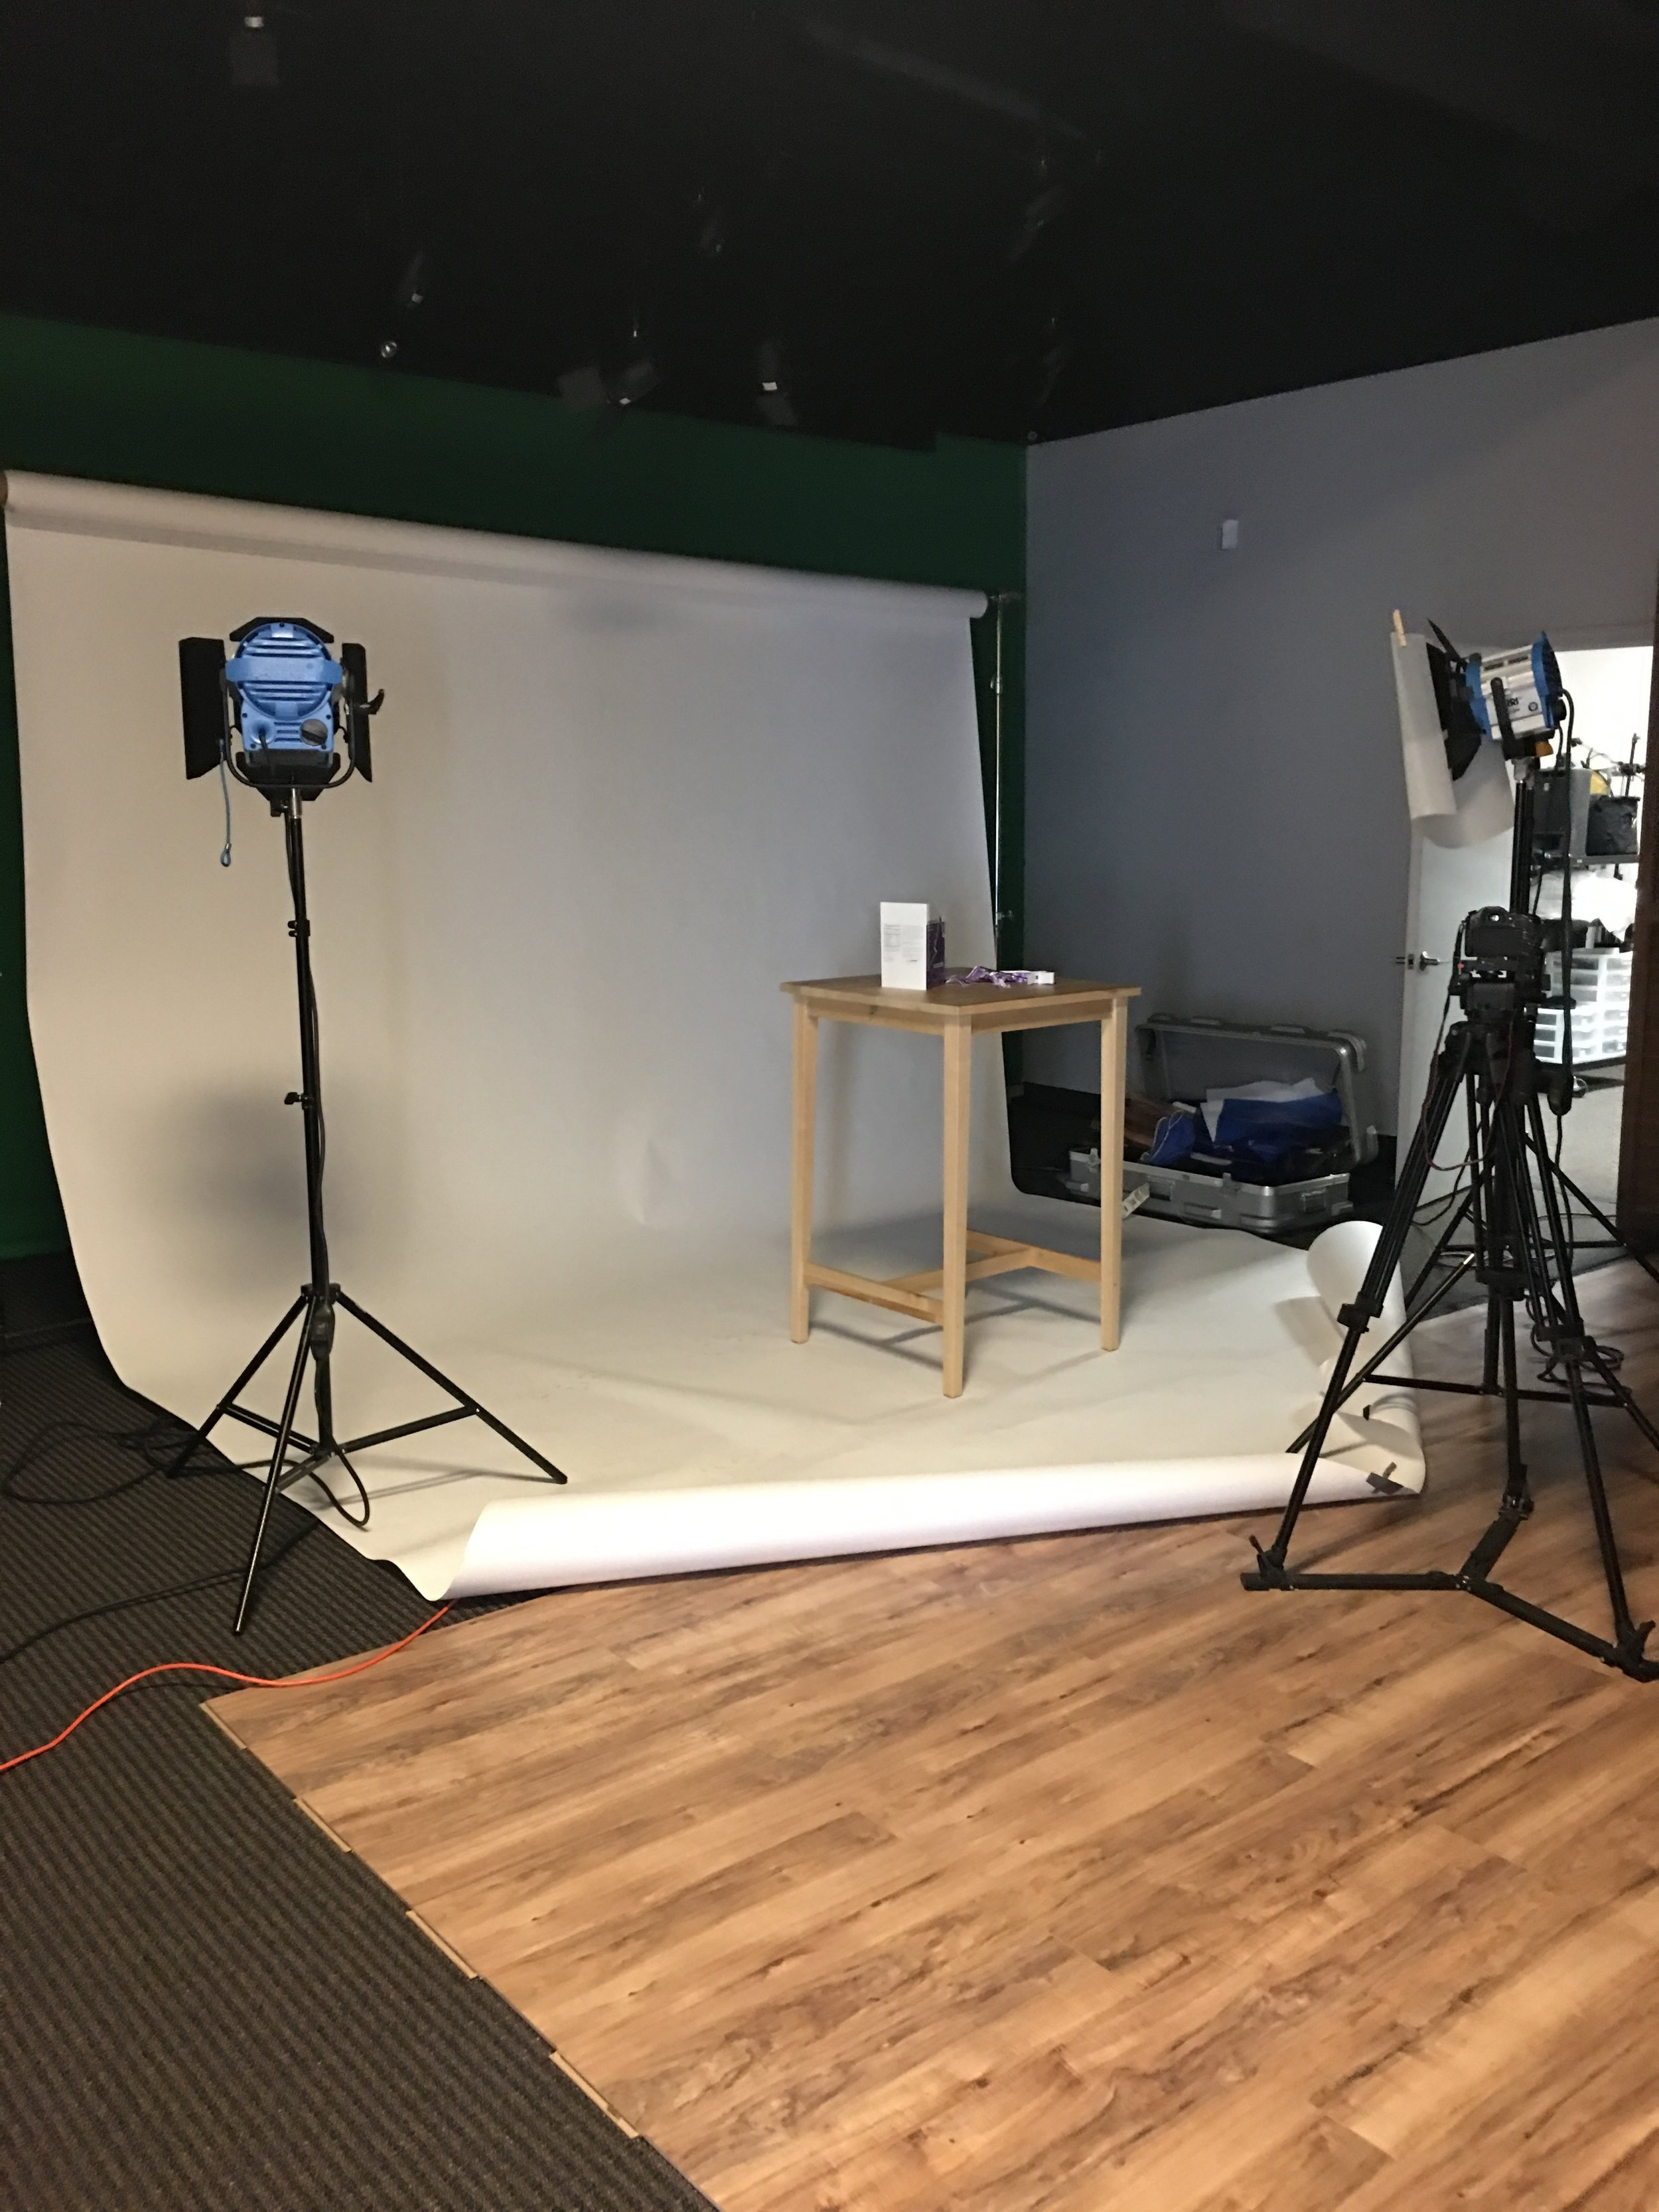 One of our members used a provided white paper backdrop as opposed to the muslin for a product shoot. (The table is also provided.)